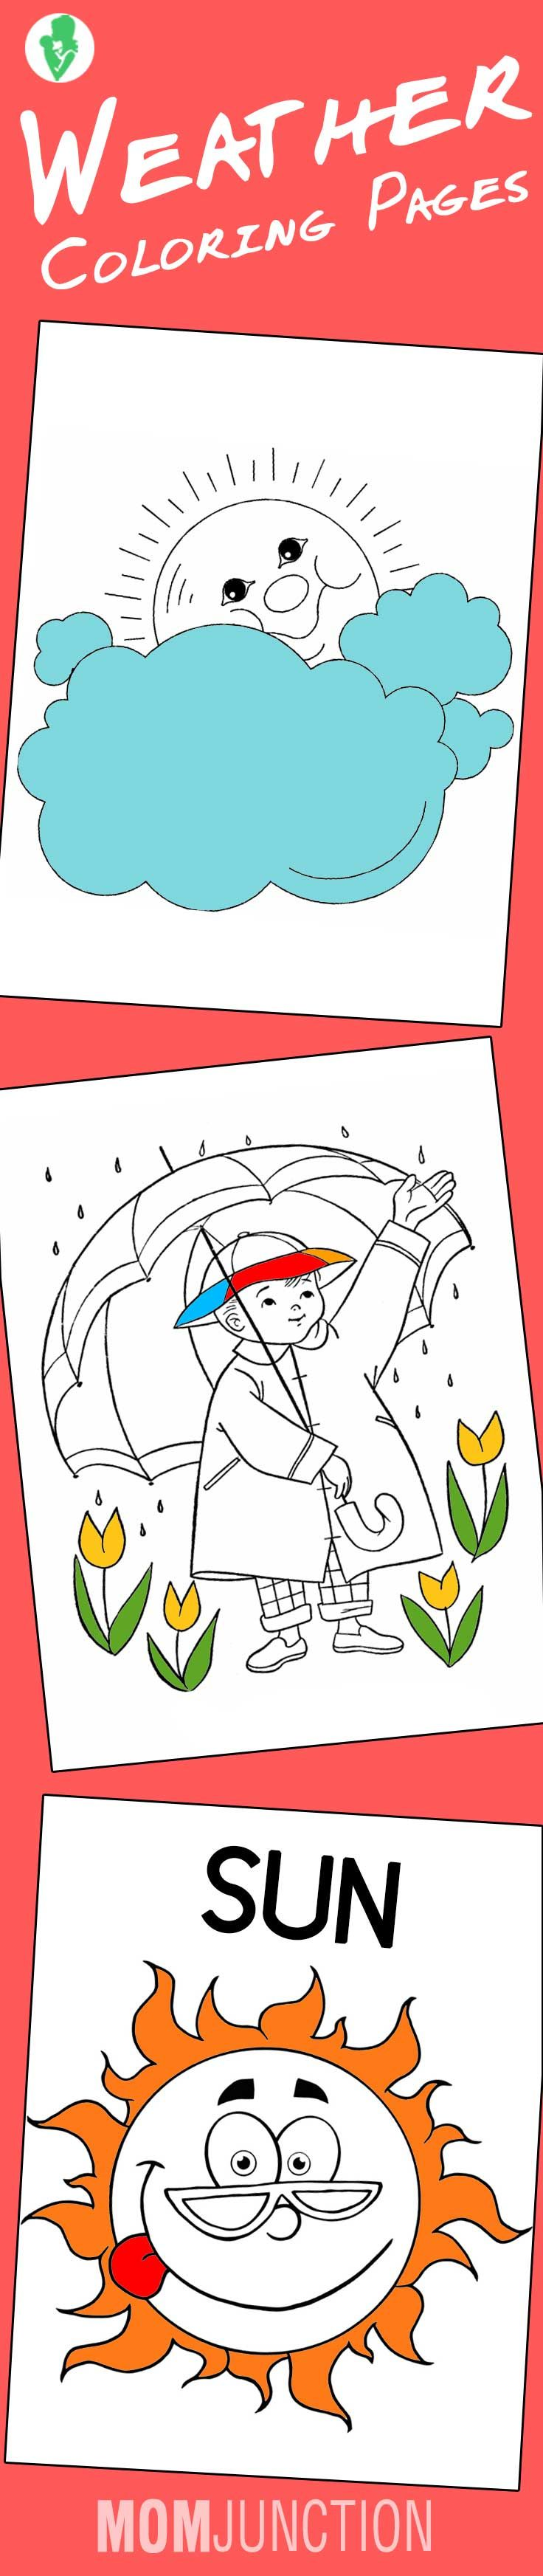 Top 10 Free Printable Weather Coloring Pages Online ...